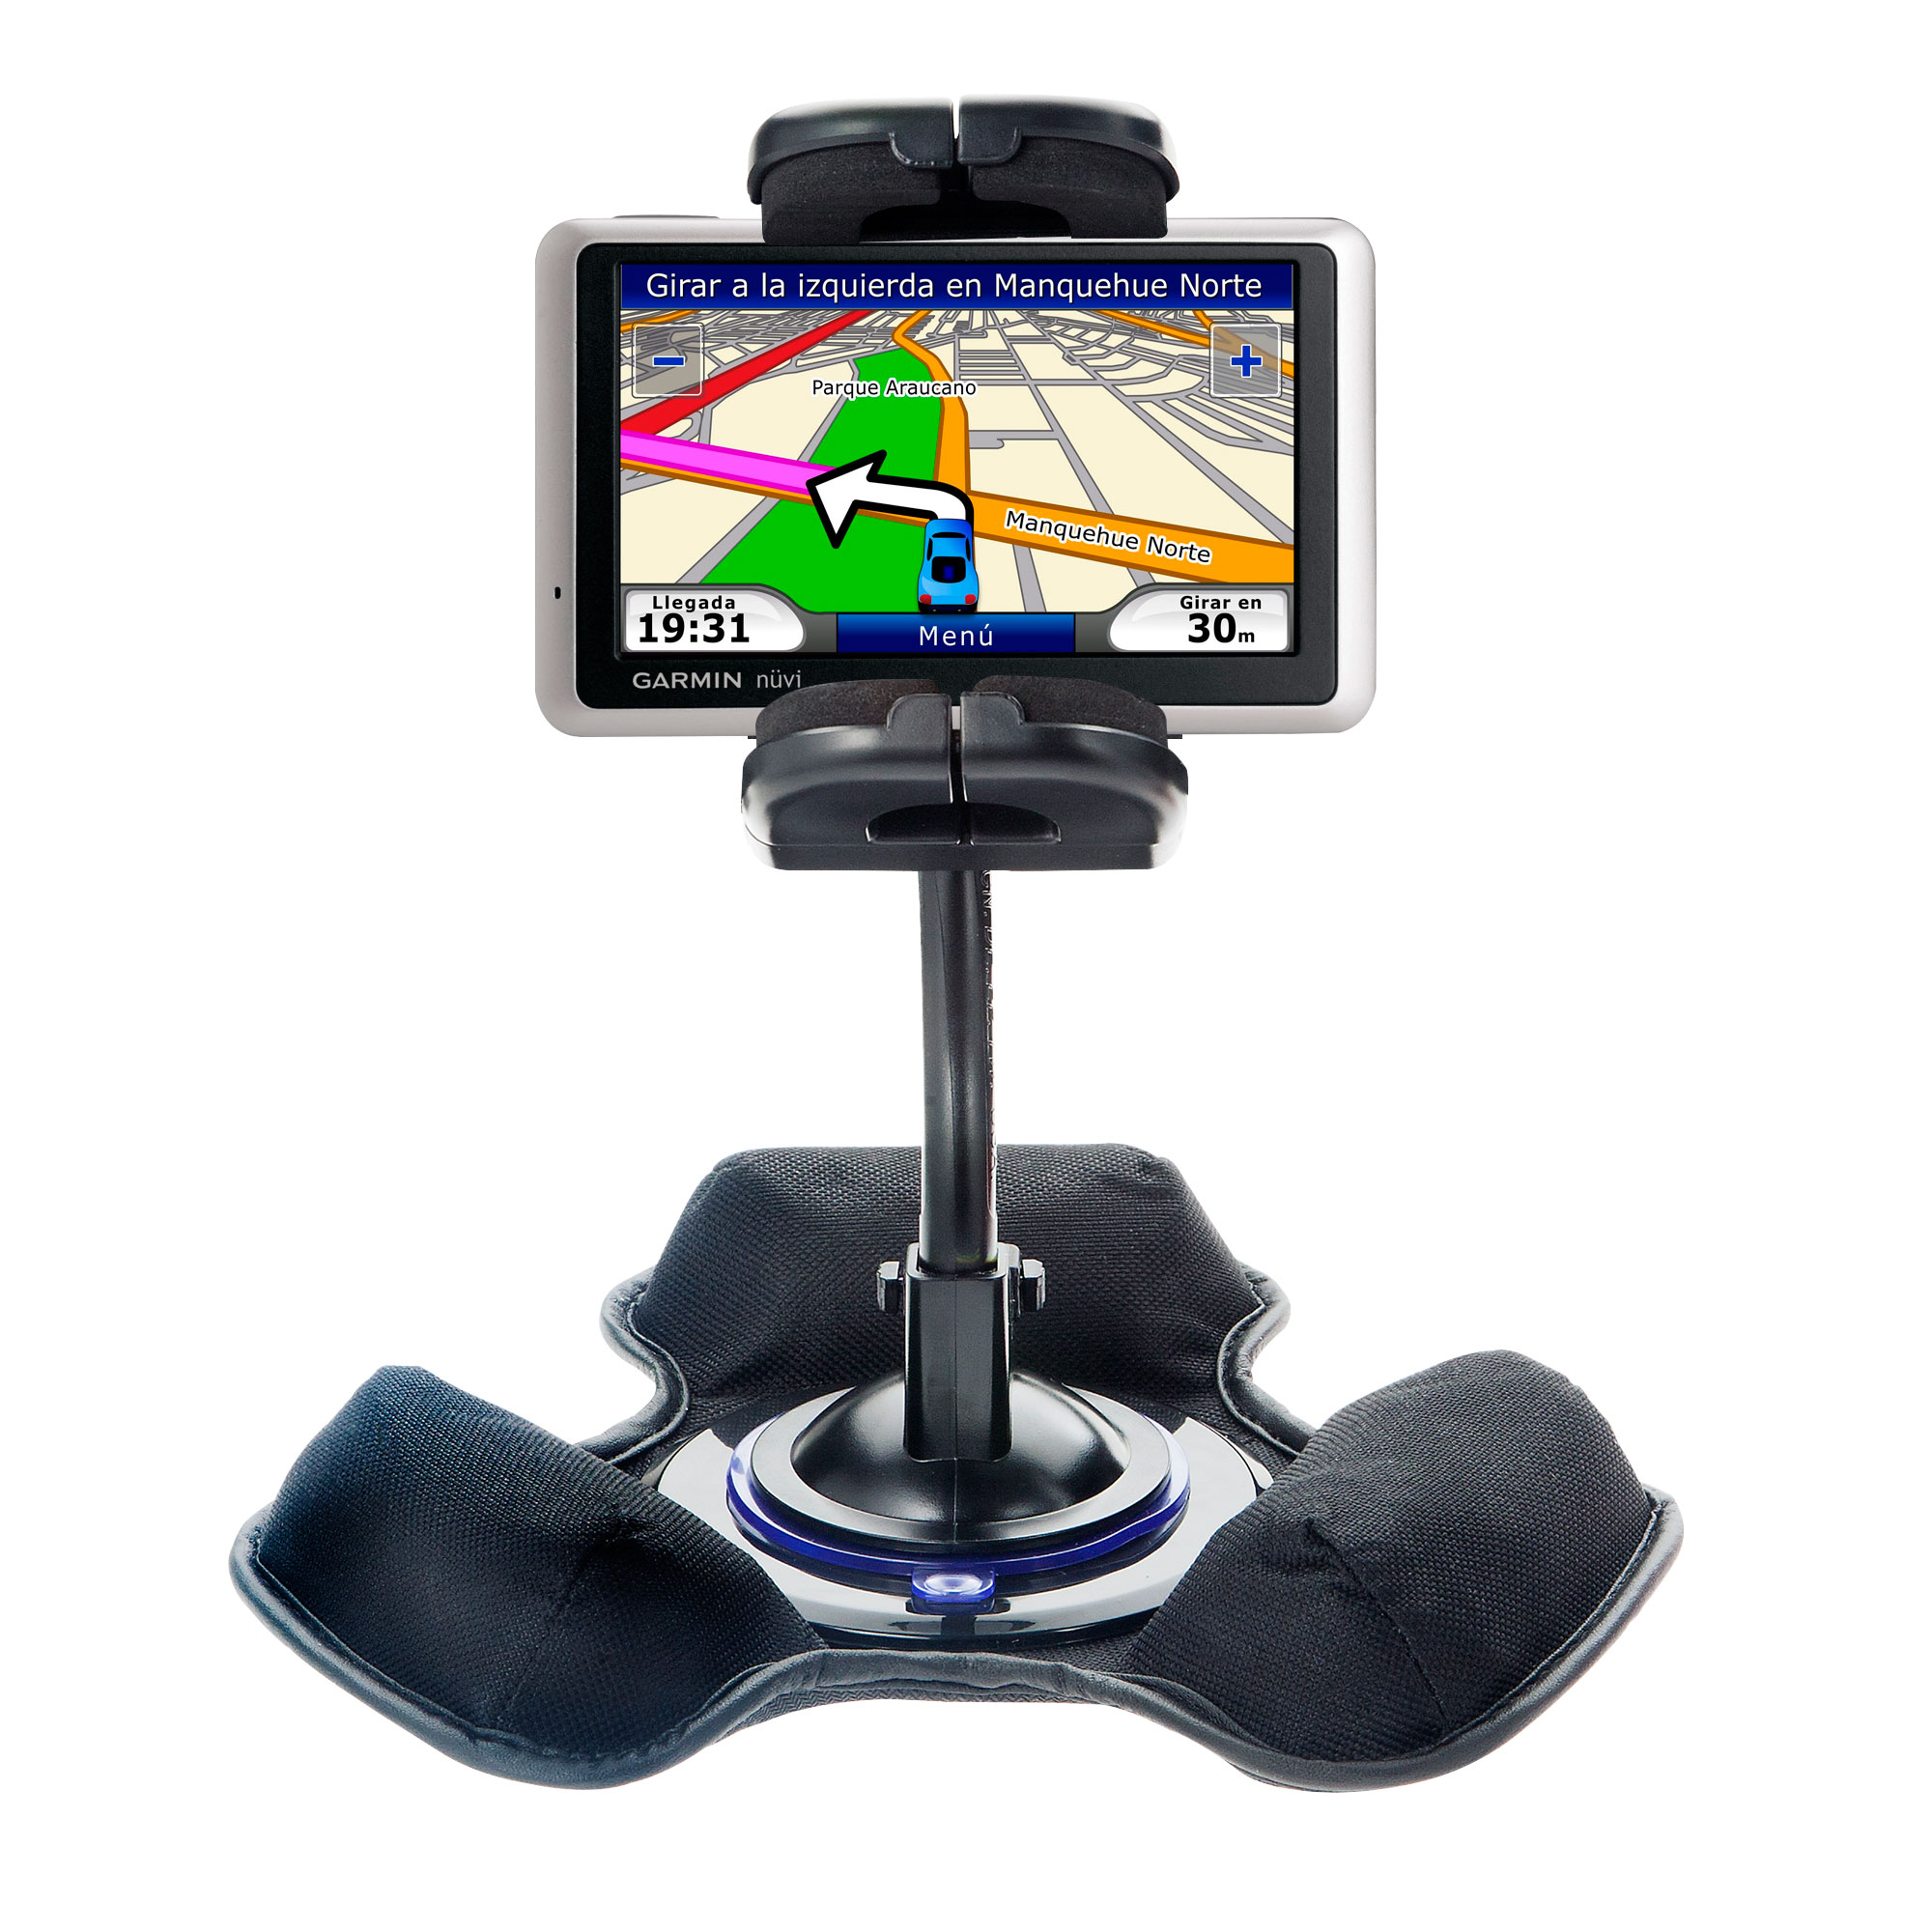 Dash and Windshield Holder compatible with the Garmin Nuvi 1300